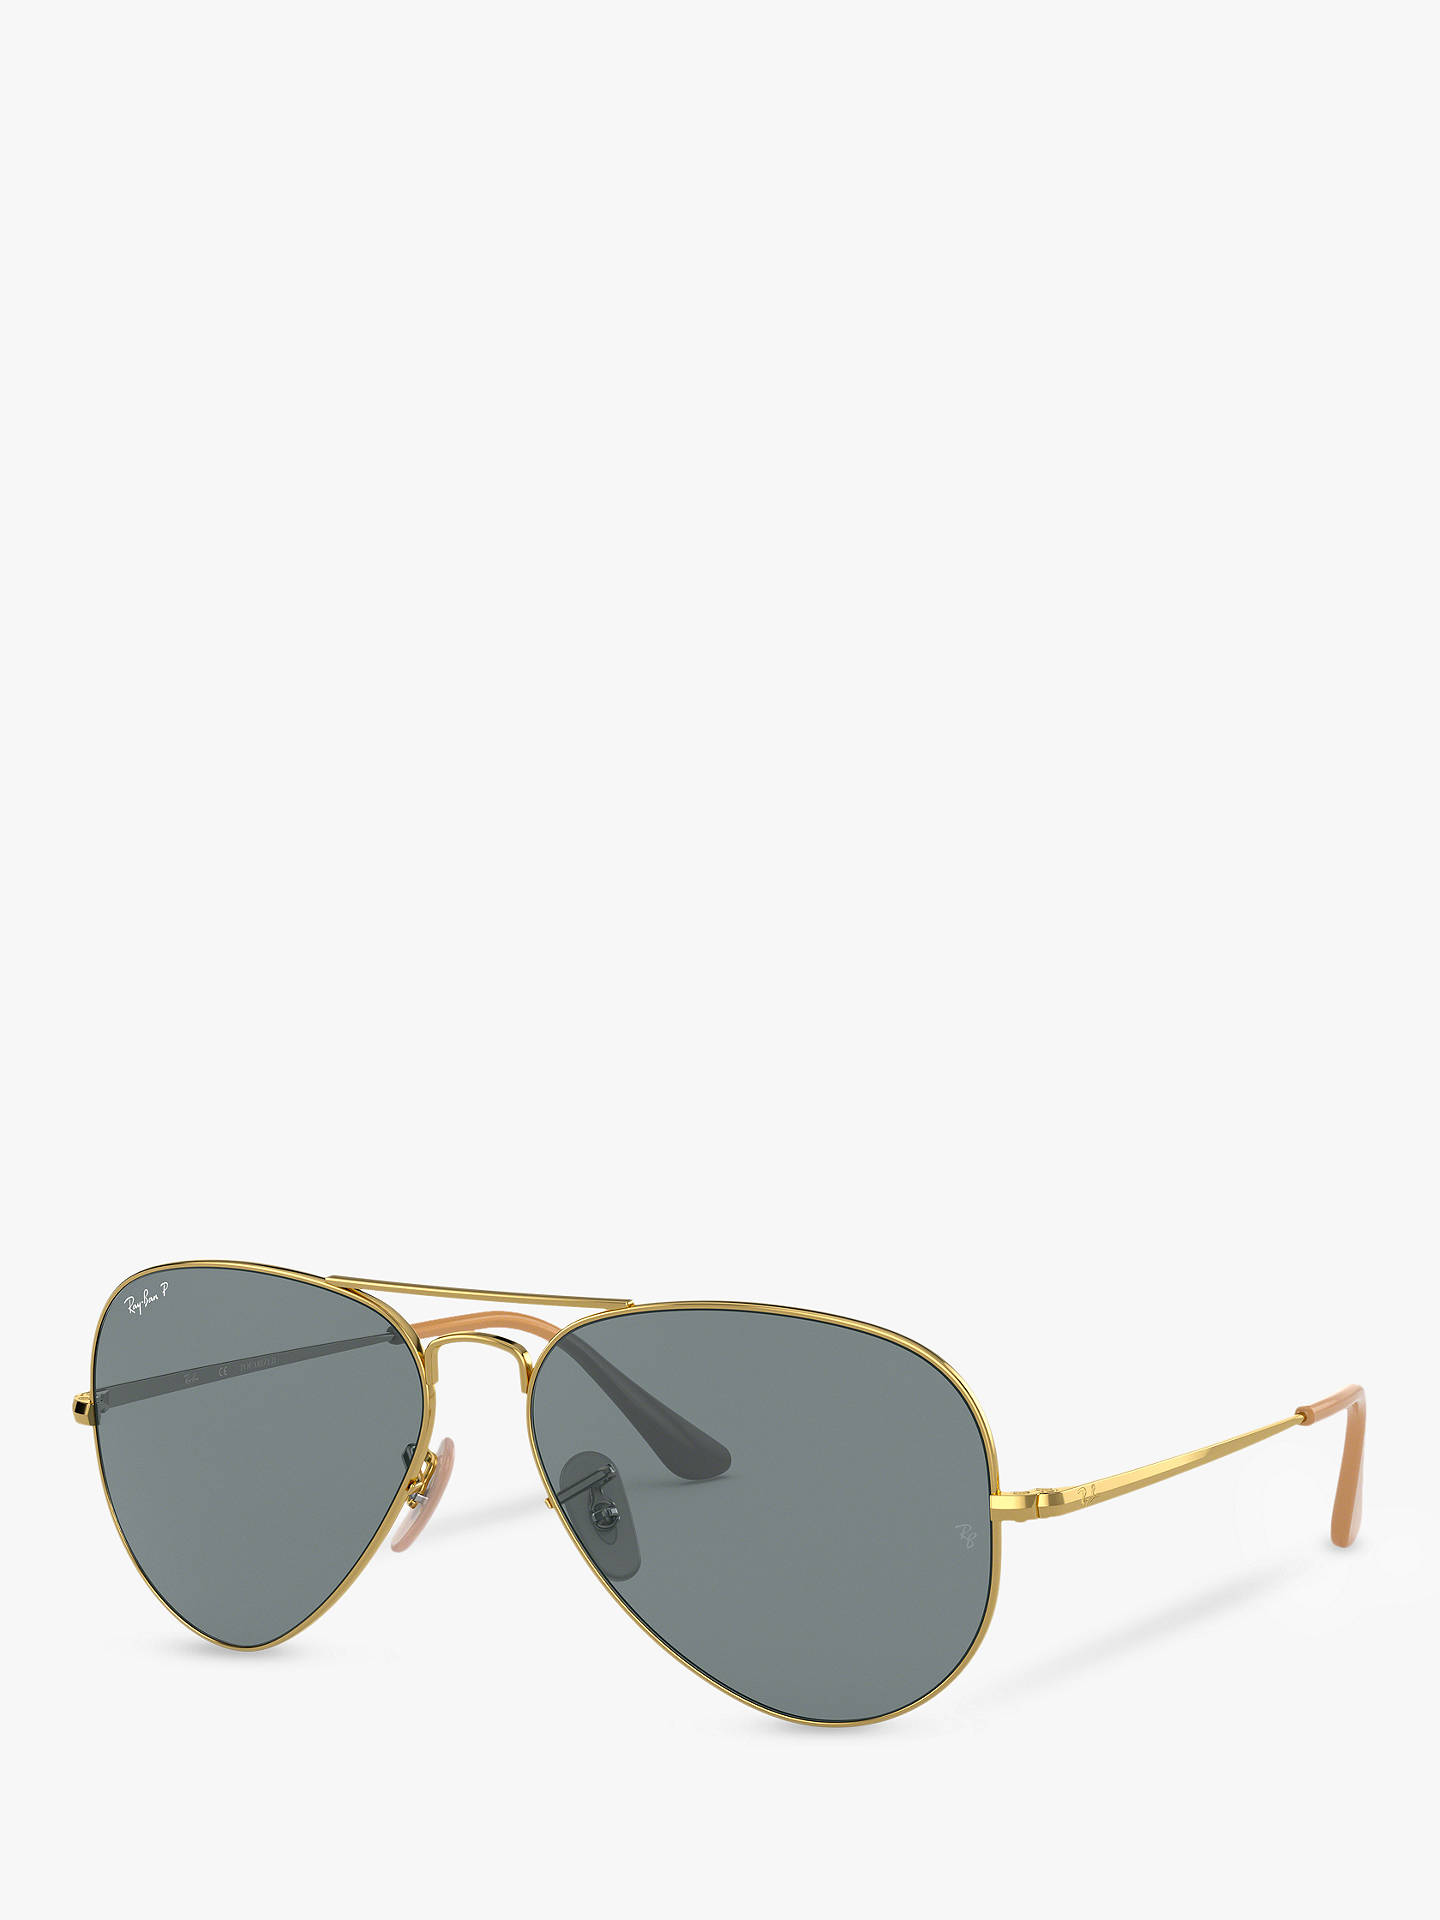 204708af8 Buy Ray-Ban RB3689 Women's Polarised Aviator Sunglasses, Gold/Blue Online  at johnlewis ...